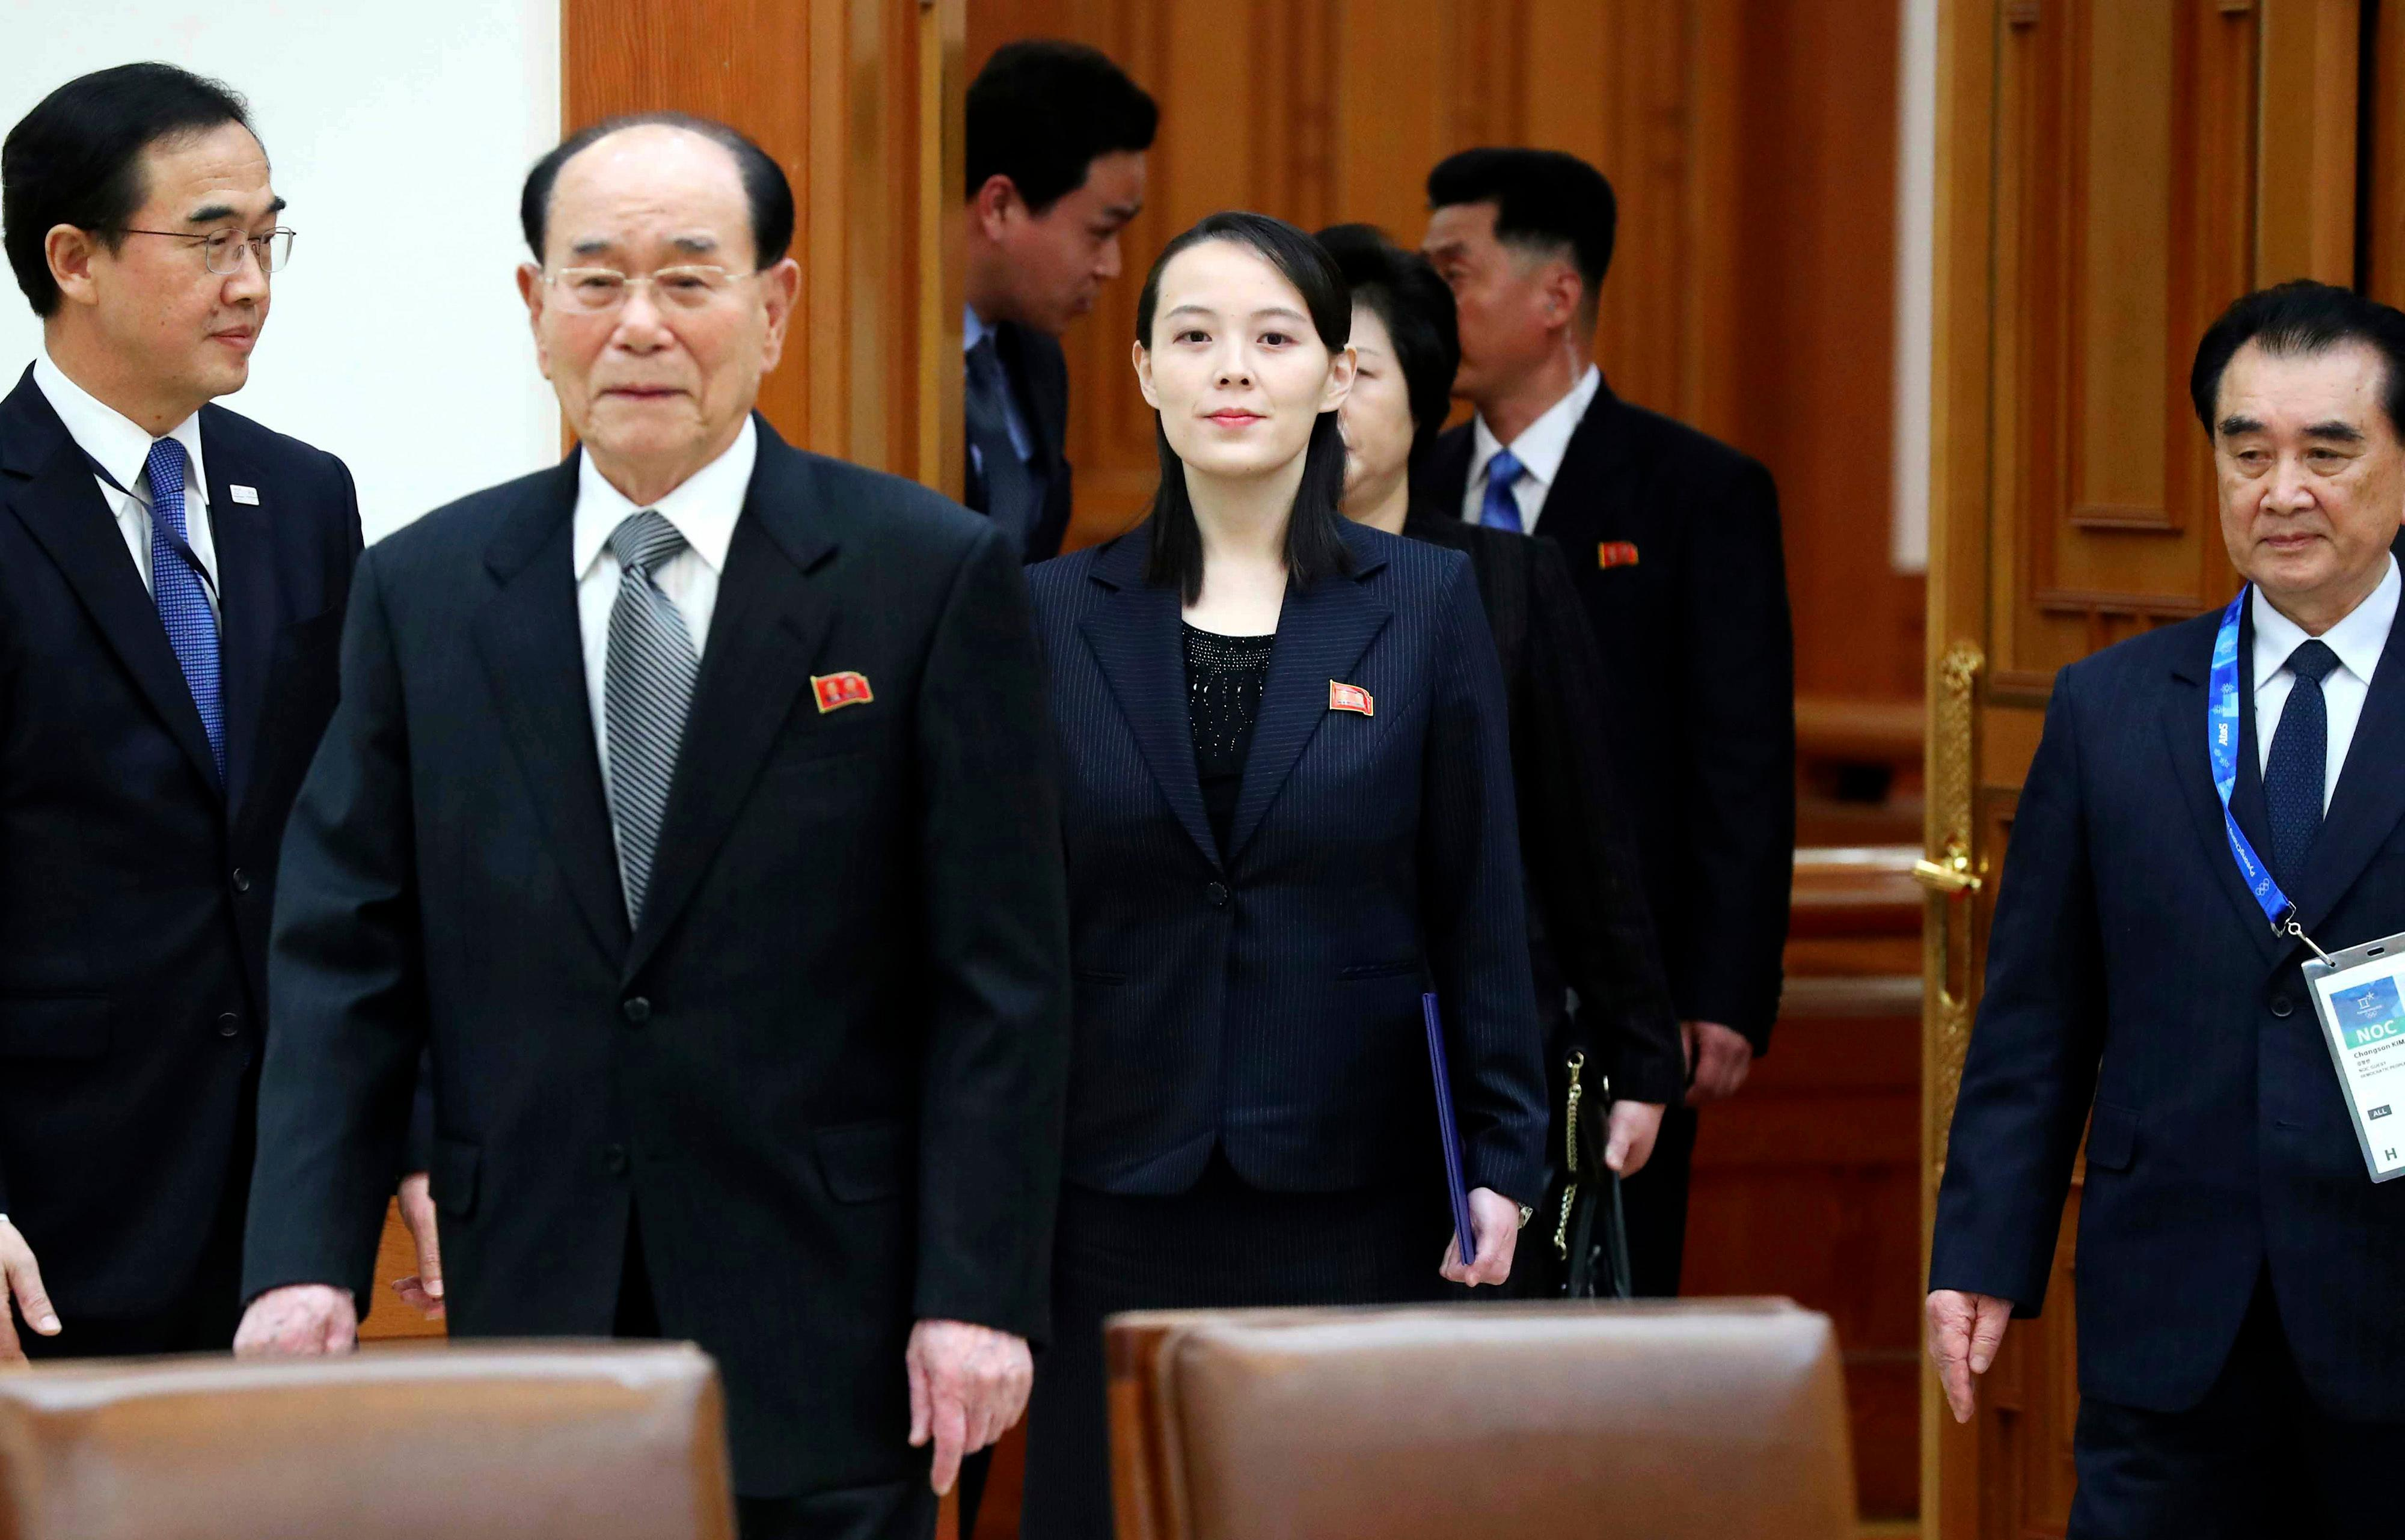 Kim Yo Jong, center, sister of North Korean leader Kim Jong Un, and the country's nominal head of state Kim Yong Nam, second from left, arrive to meet South Korean President Moon Jae-in at the presidential house in Seoul, South Korea, Saturday, Feb. 10, 2018.  President Moon on Saturday met with the senior North Korean officials over lunch at Seoul's presidential palace in the most significant diplomatic encounter between the rivals in years.(Kim Ju-sung/Yonhap via AP)